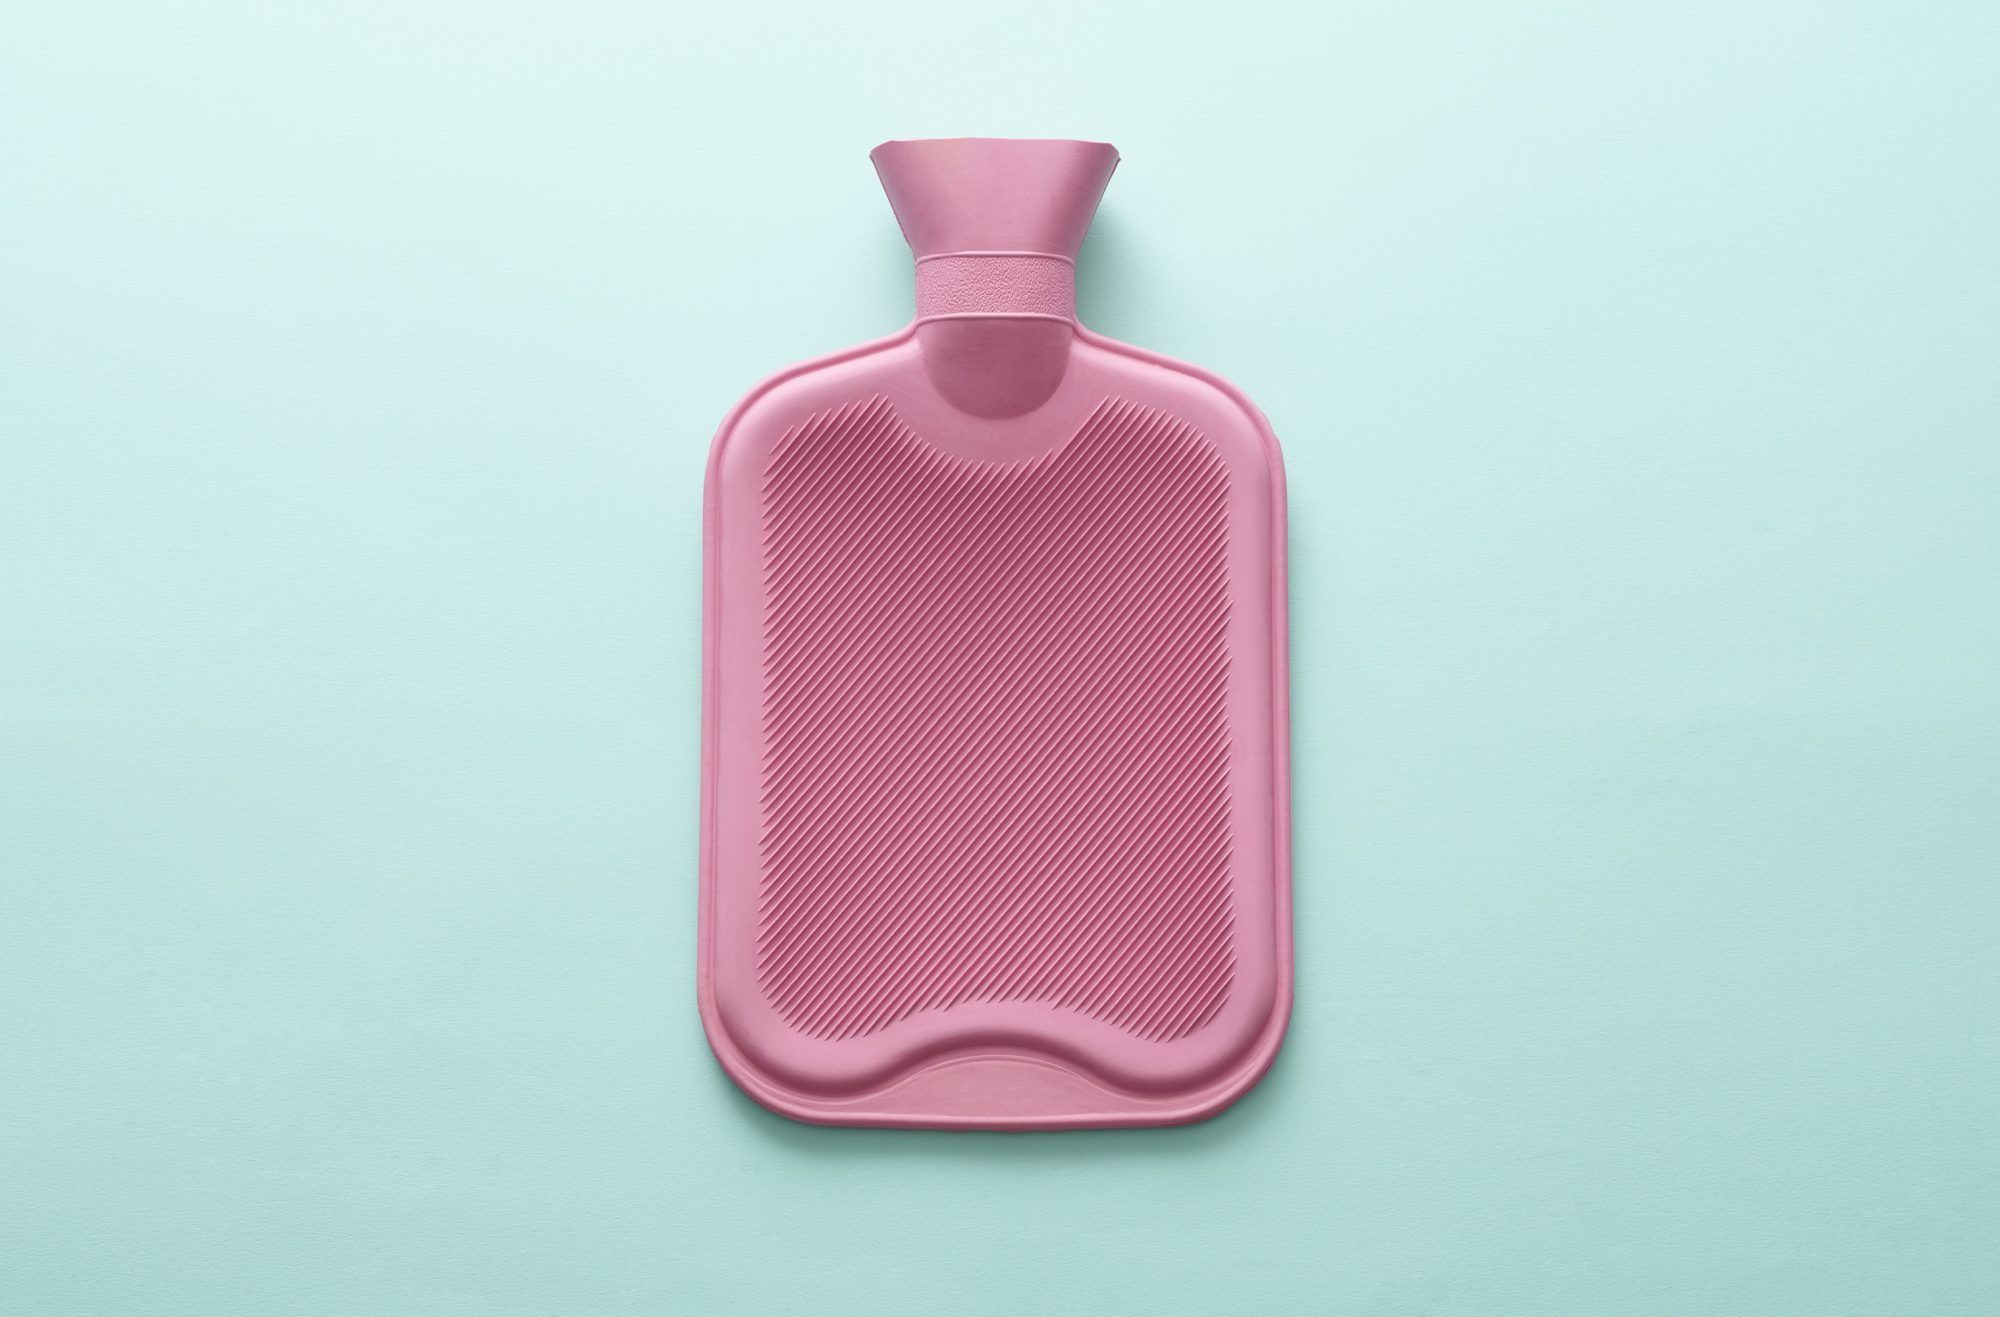 How to relieve period pain: Hot water bottle